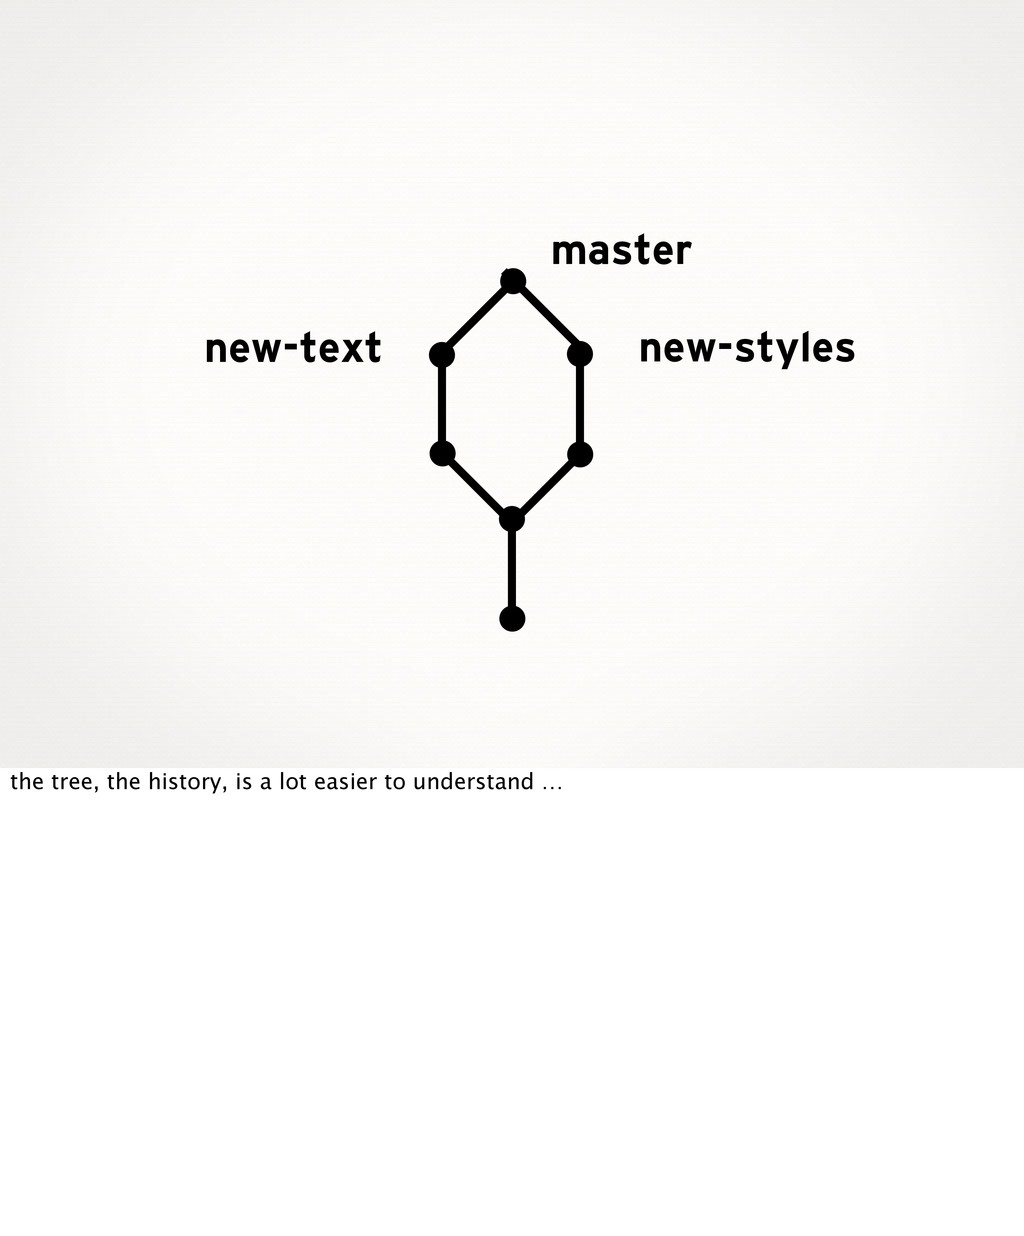 new-styles new-text master the tree, the histor...